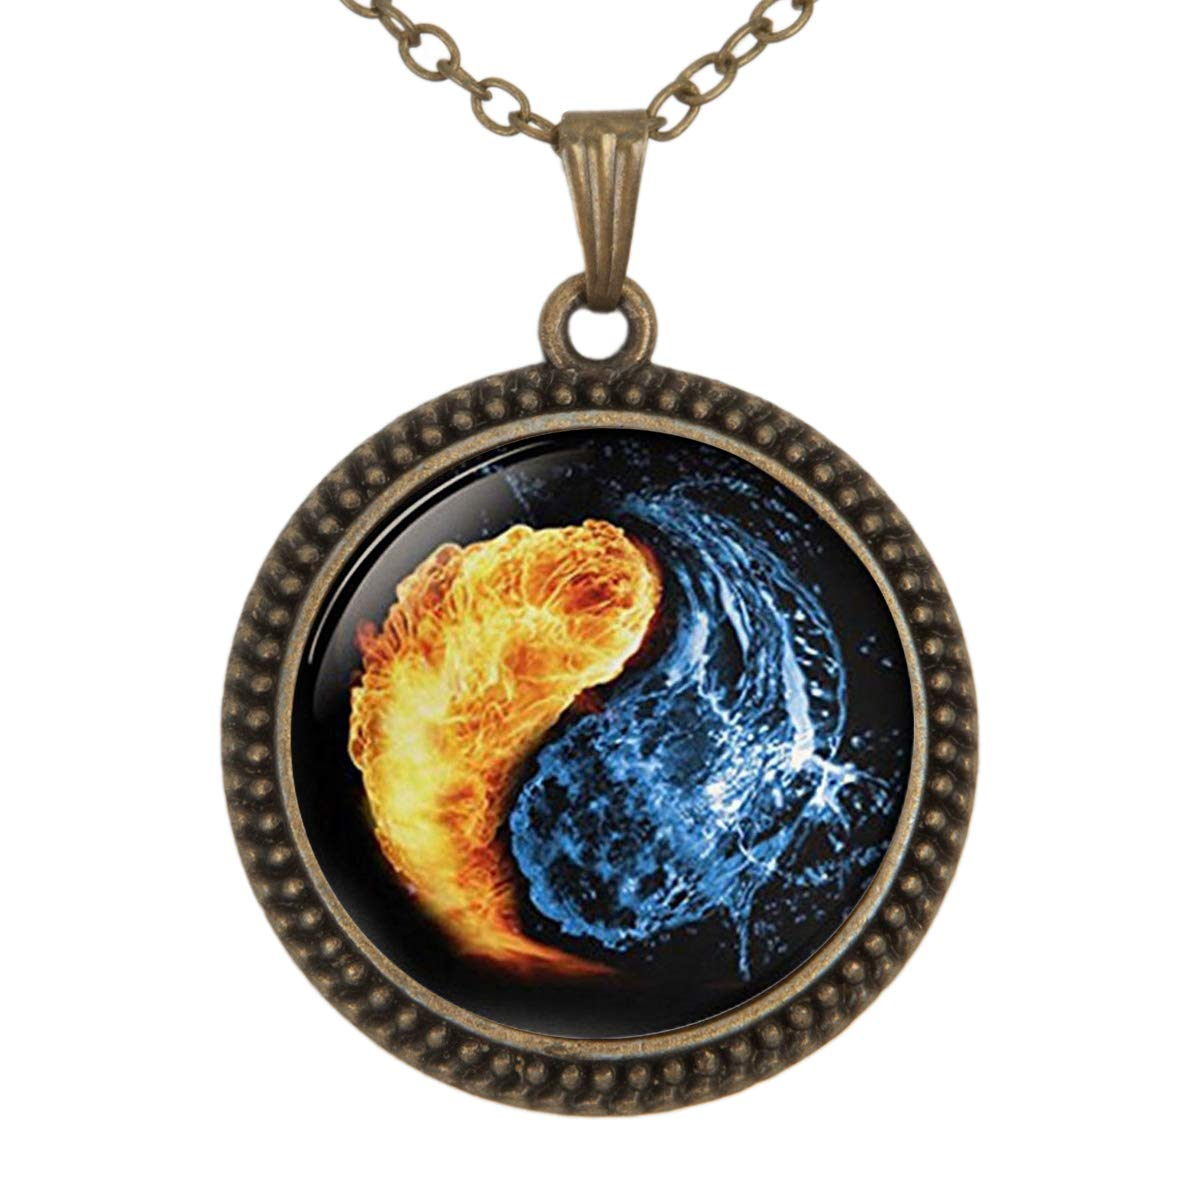 Lightrain Yin Yang Fire and Water Pendant Necklace Vintage Bronze Chain Statement Necklace Handmade Jewelry Gifts